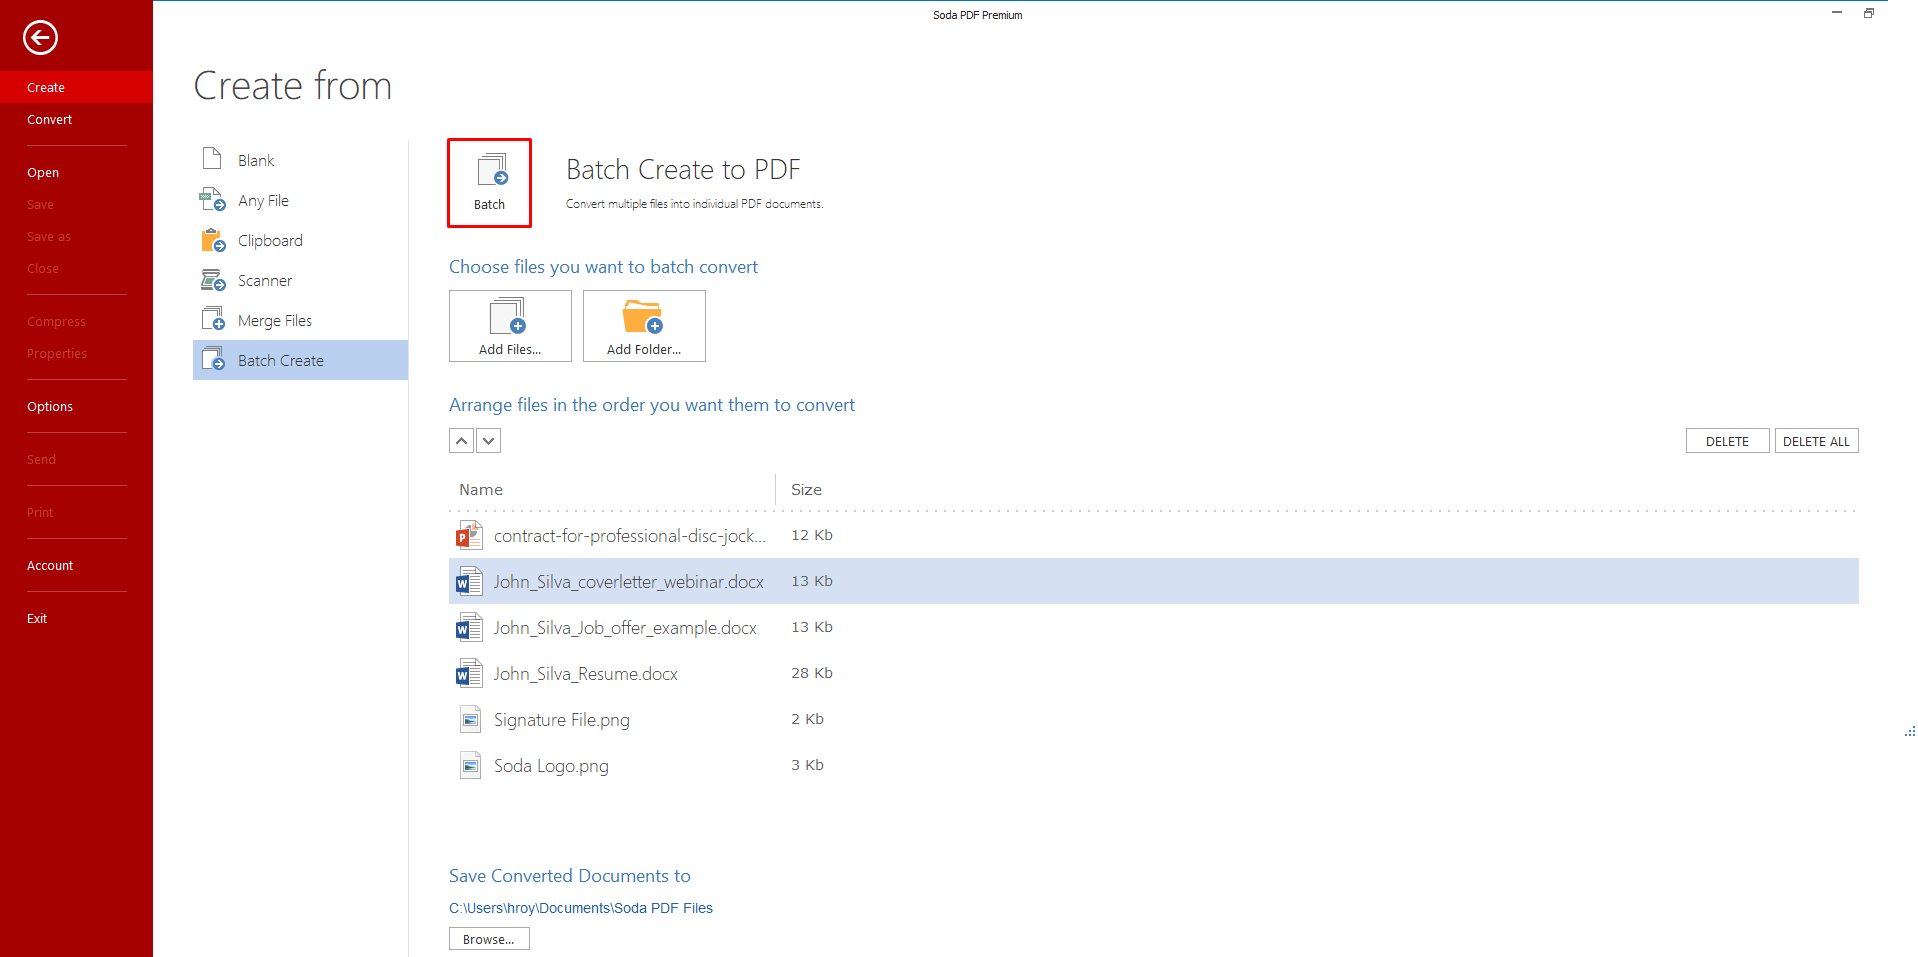 How to batch create PDF files | Soda PDF Blog